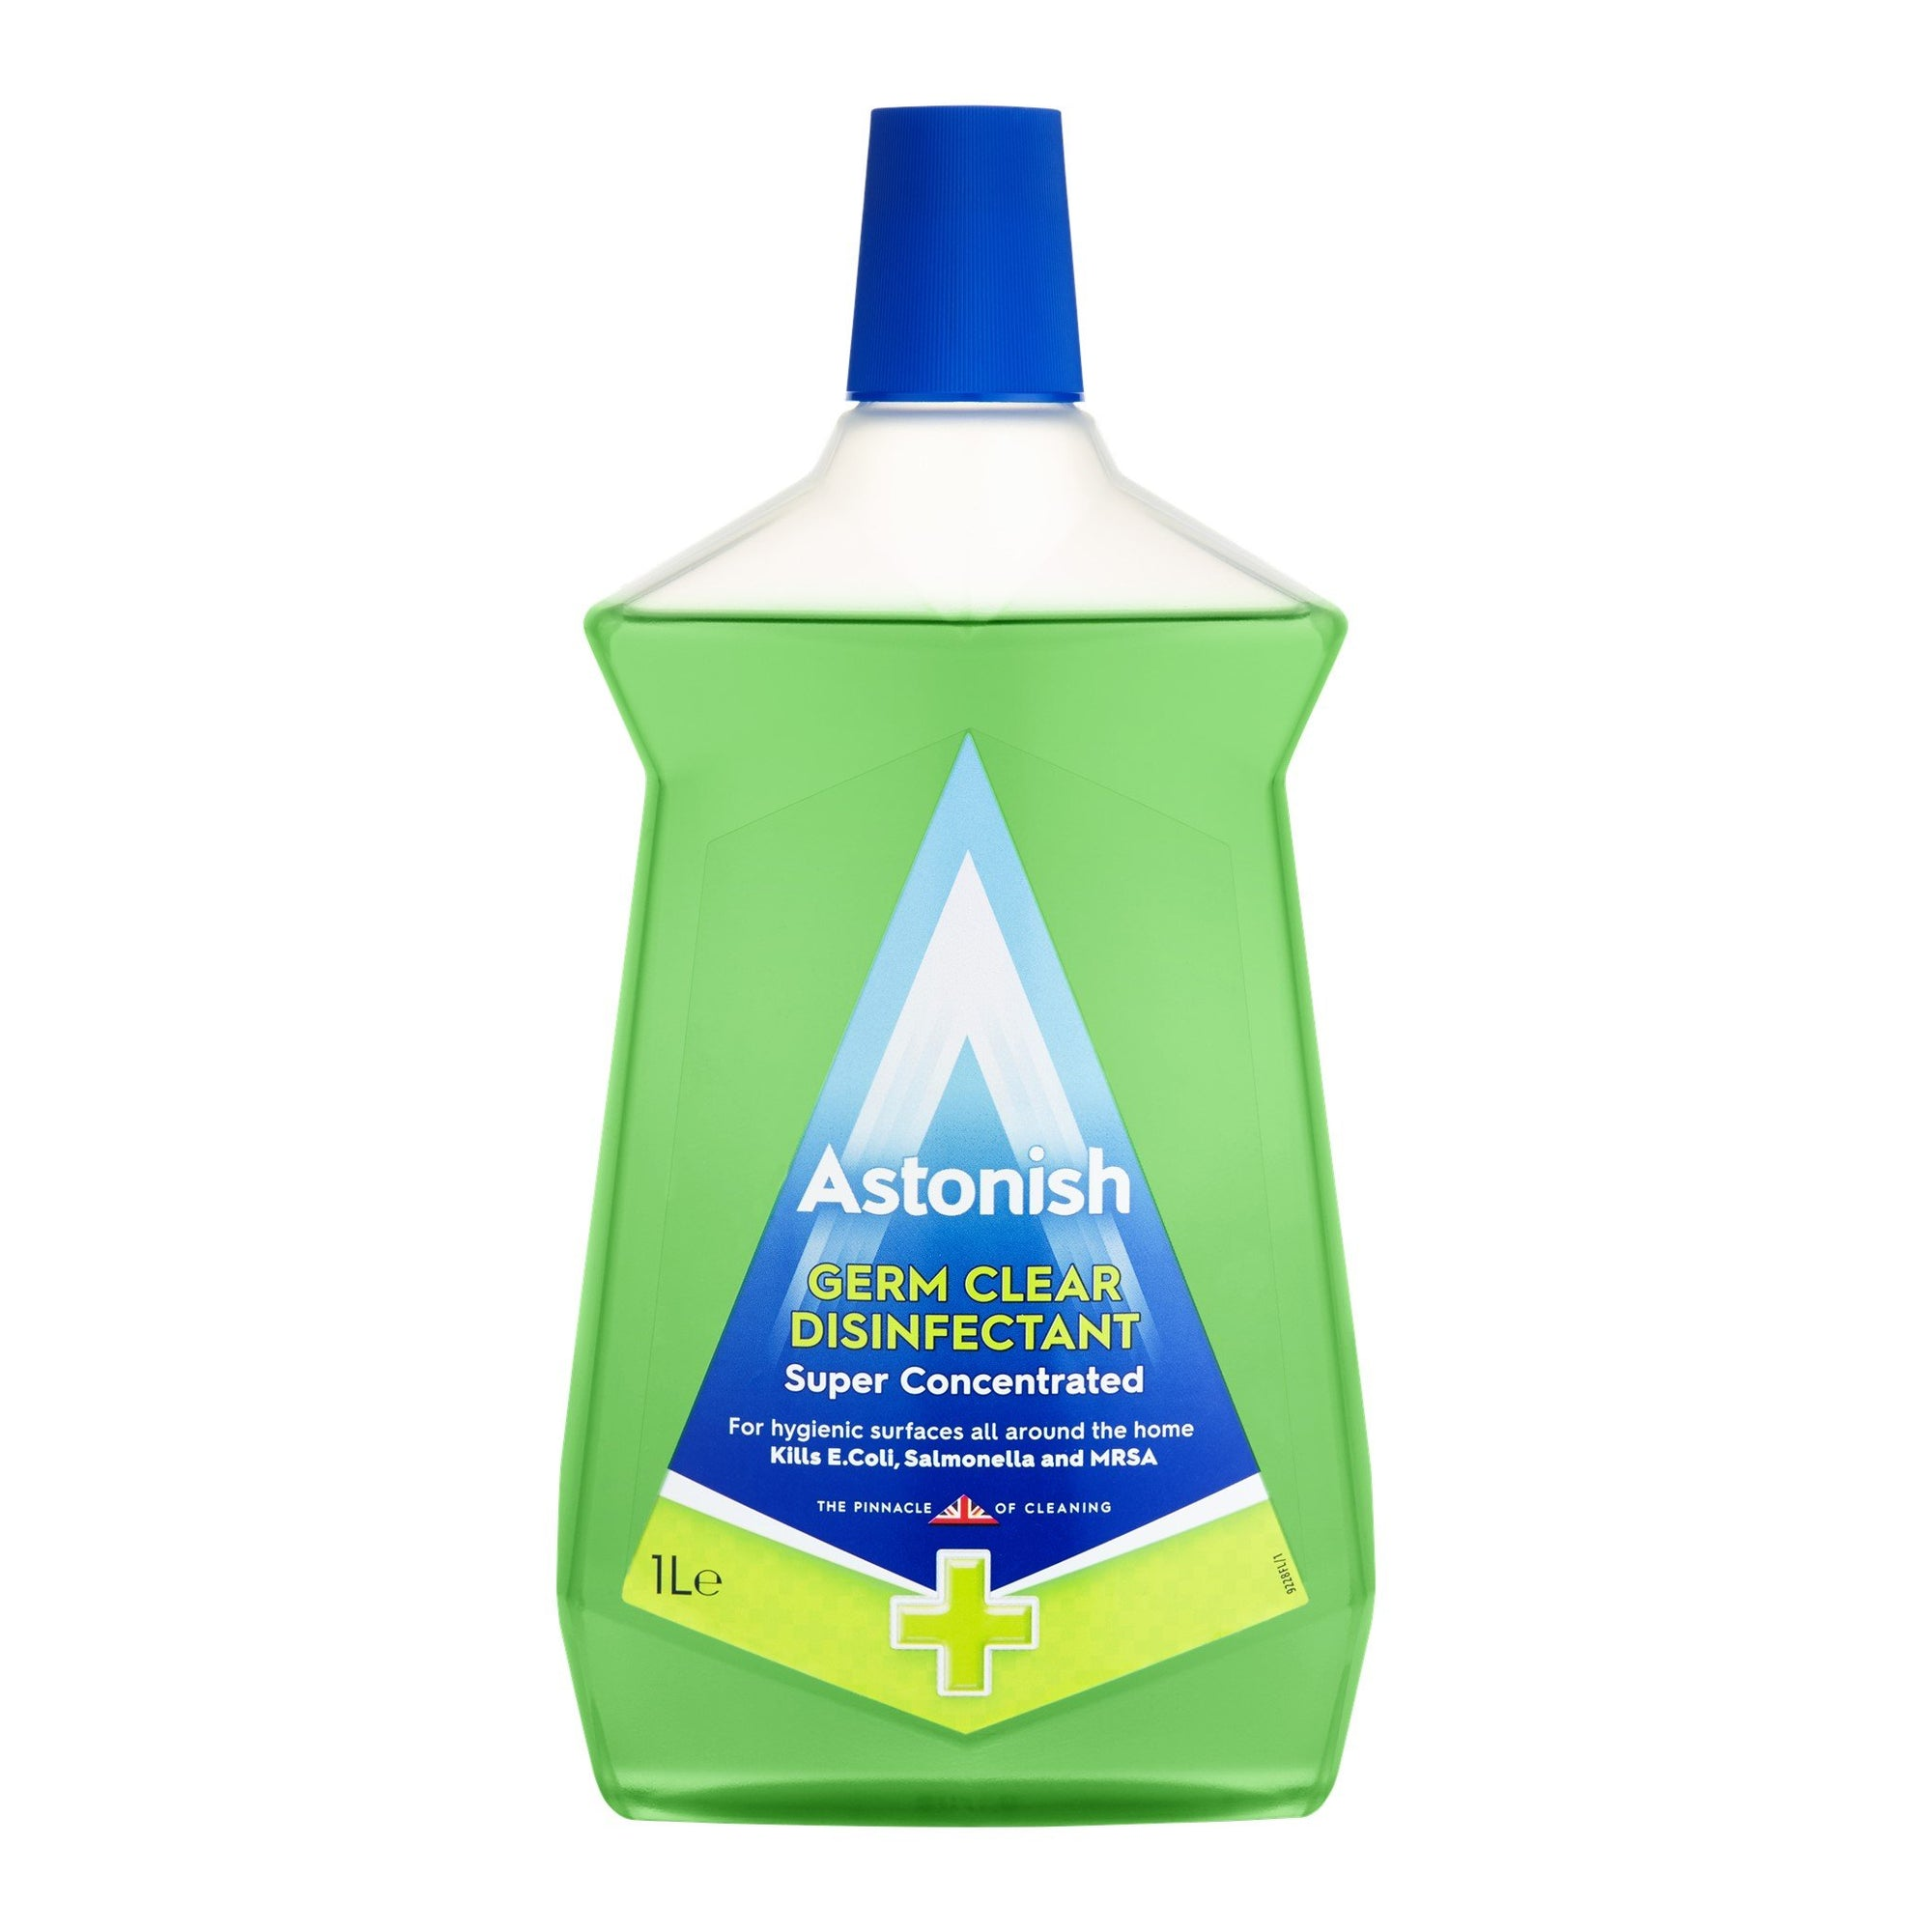 Astonish Germ Clear Disinfectant Super Concentrate 1L